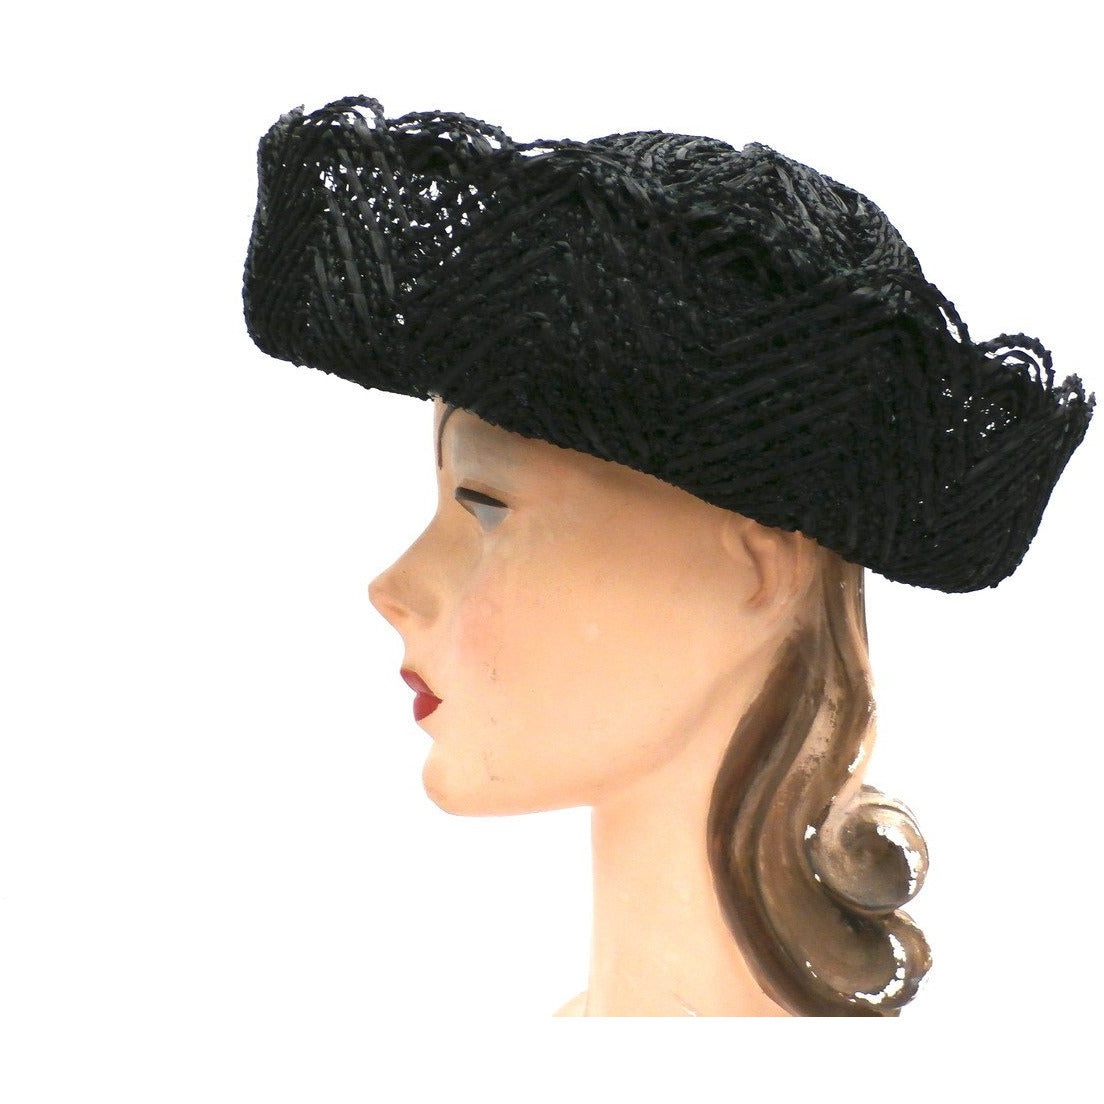 Vintage Ladies Black Cellophane Lace Straw Brimmed Hat 1960s - The Best Vintage Clothing  - 1